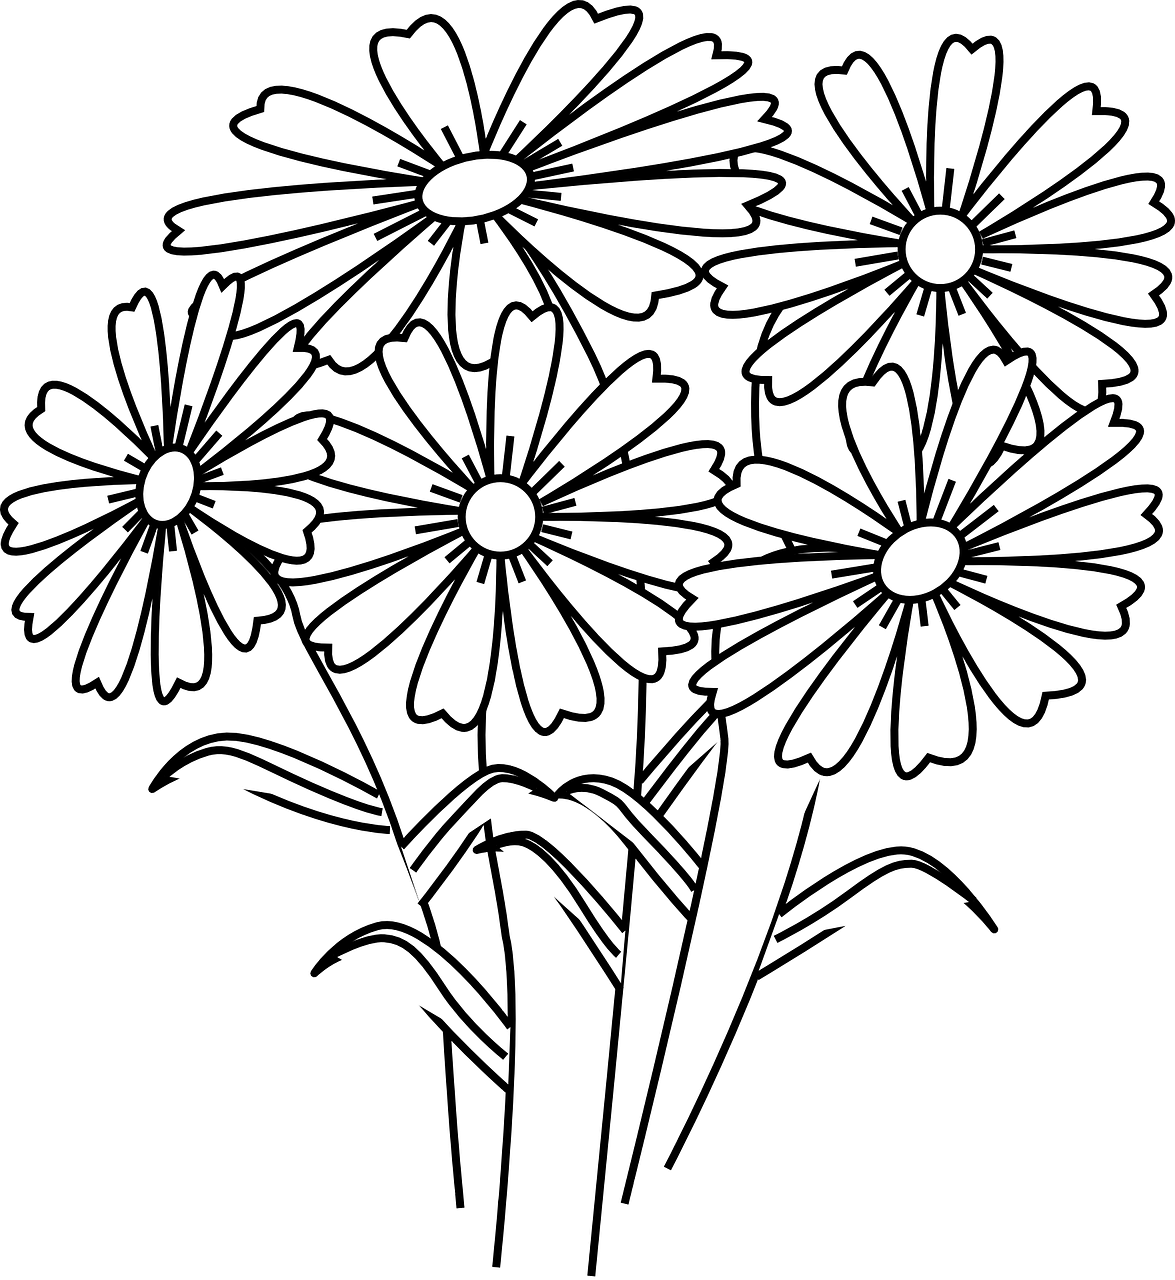 Wildflowers drawing - coloring pages free for kids 5